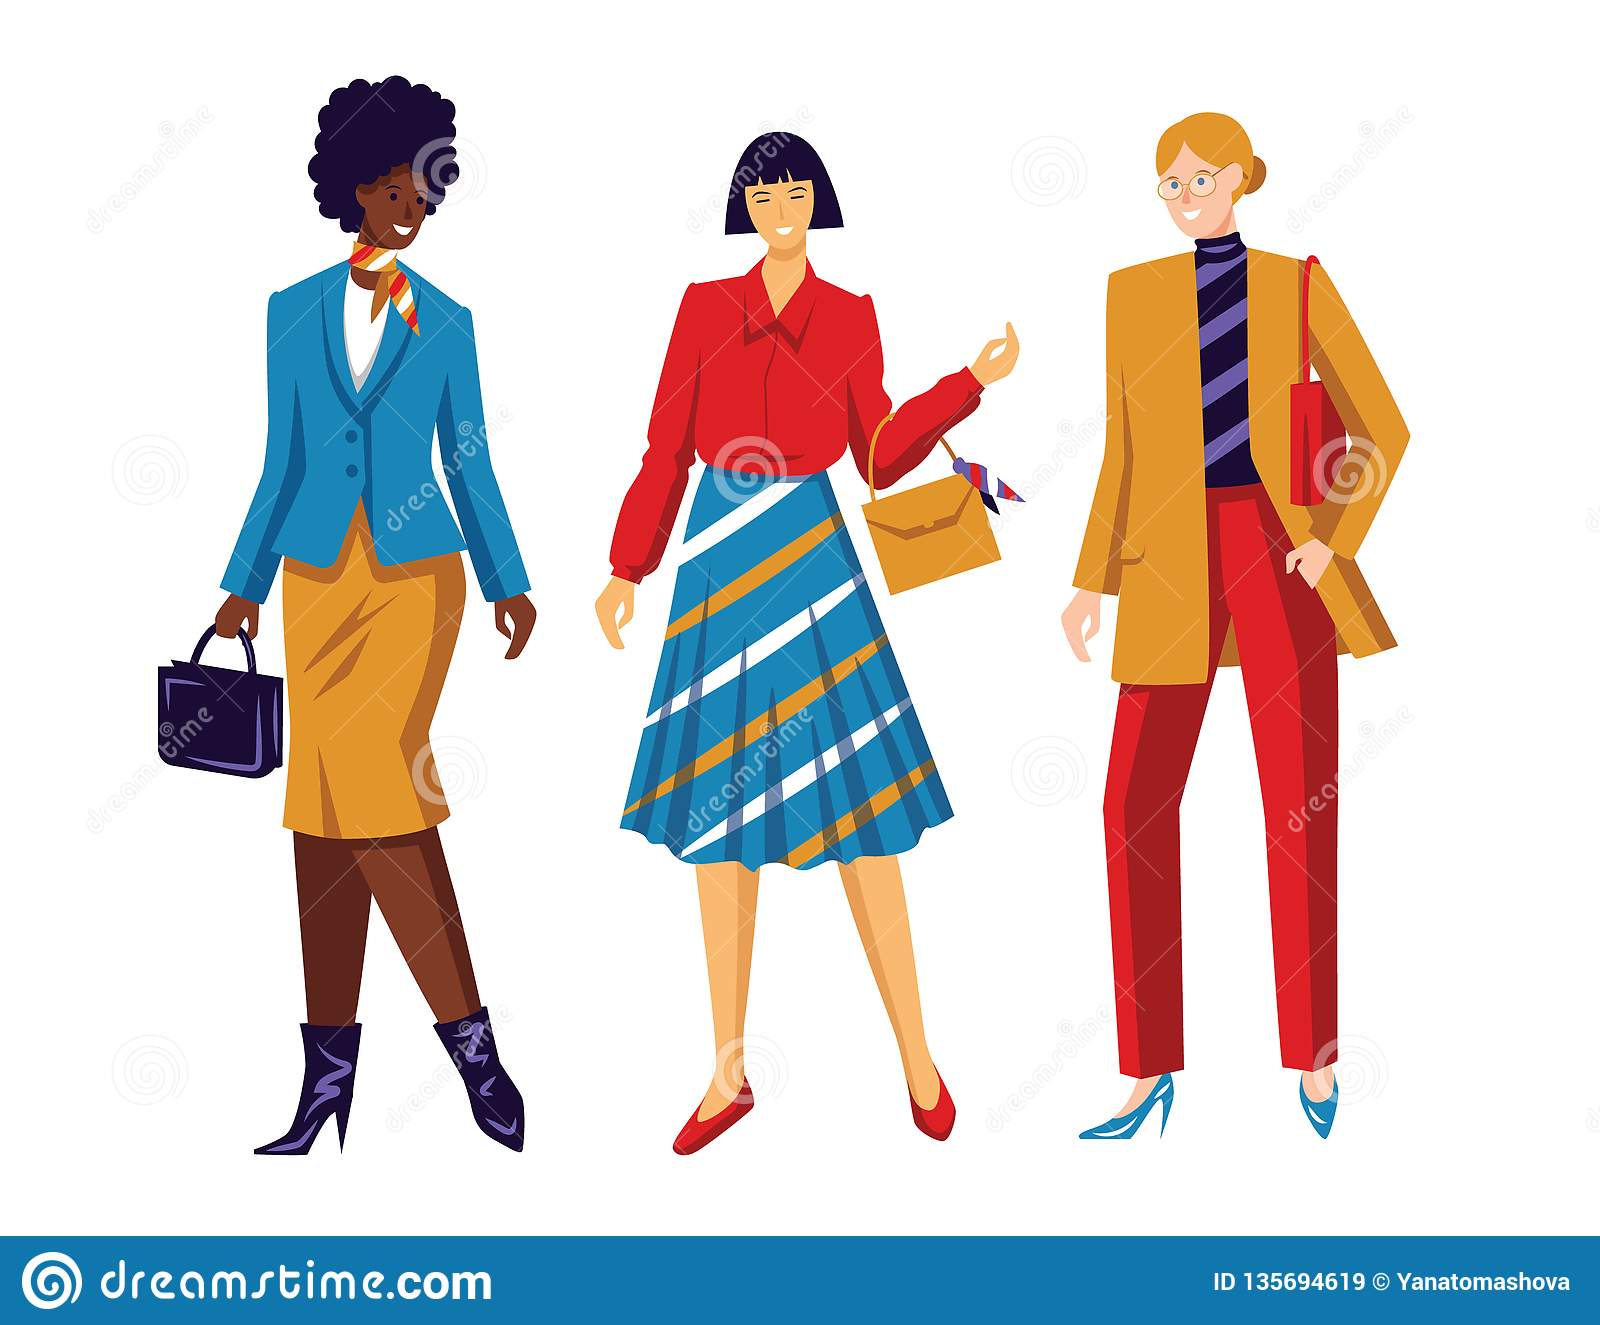 Color vector flat style illustration. Women`s team. Conceptual poster about female power and equal rights. Working girls of diffe